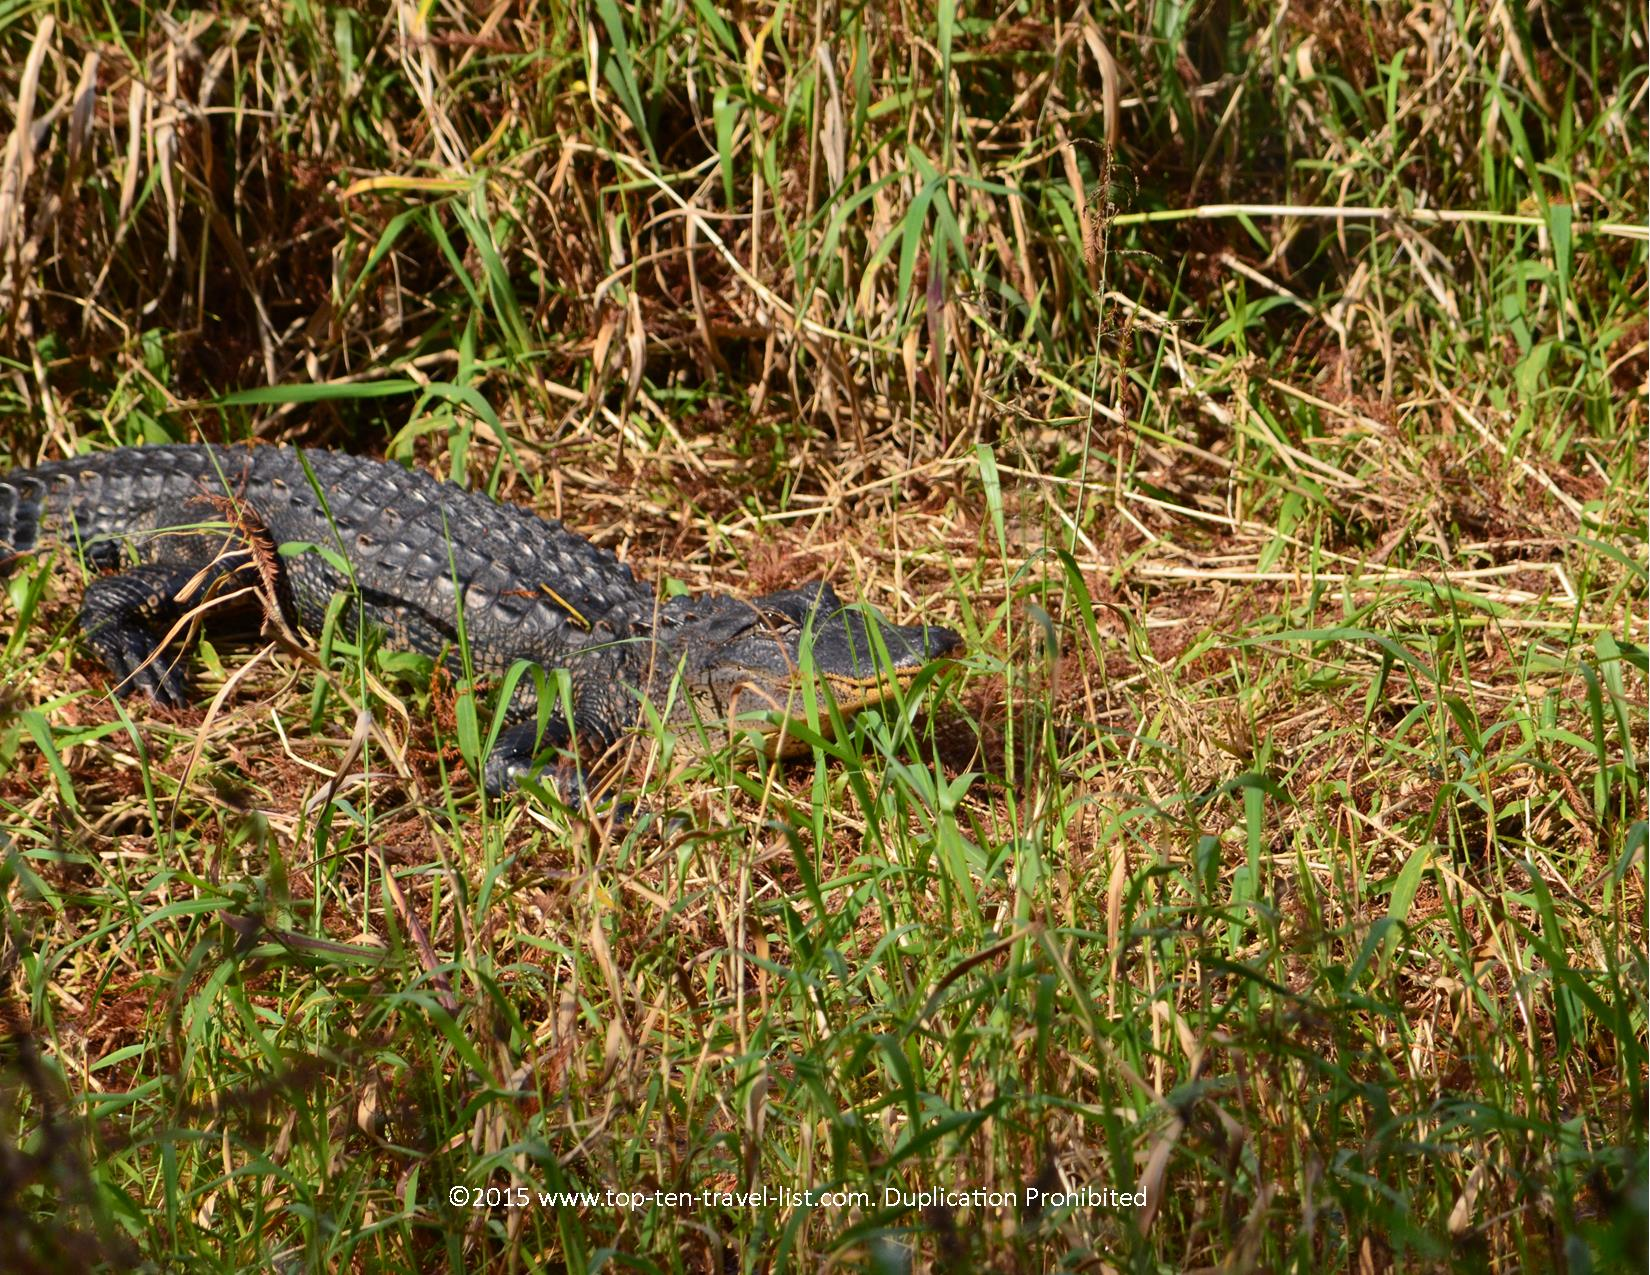 Alligator sighting at Circle B Bar Reserve in Lakeland, Florida